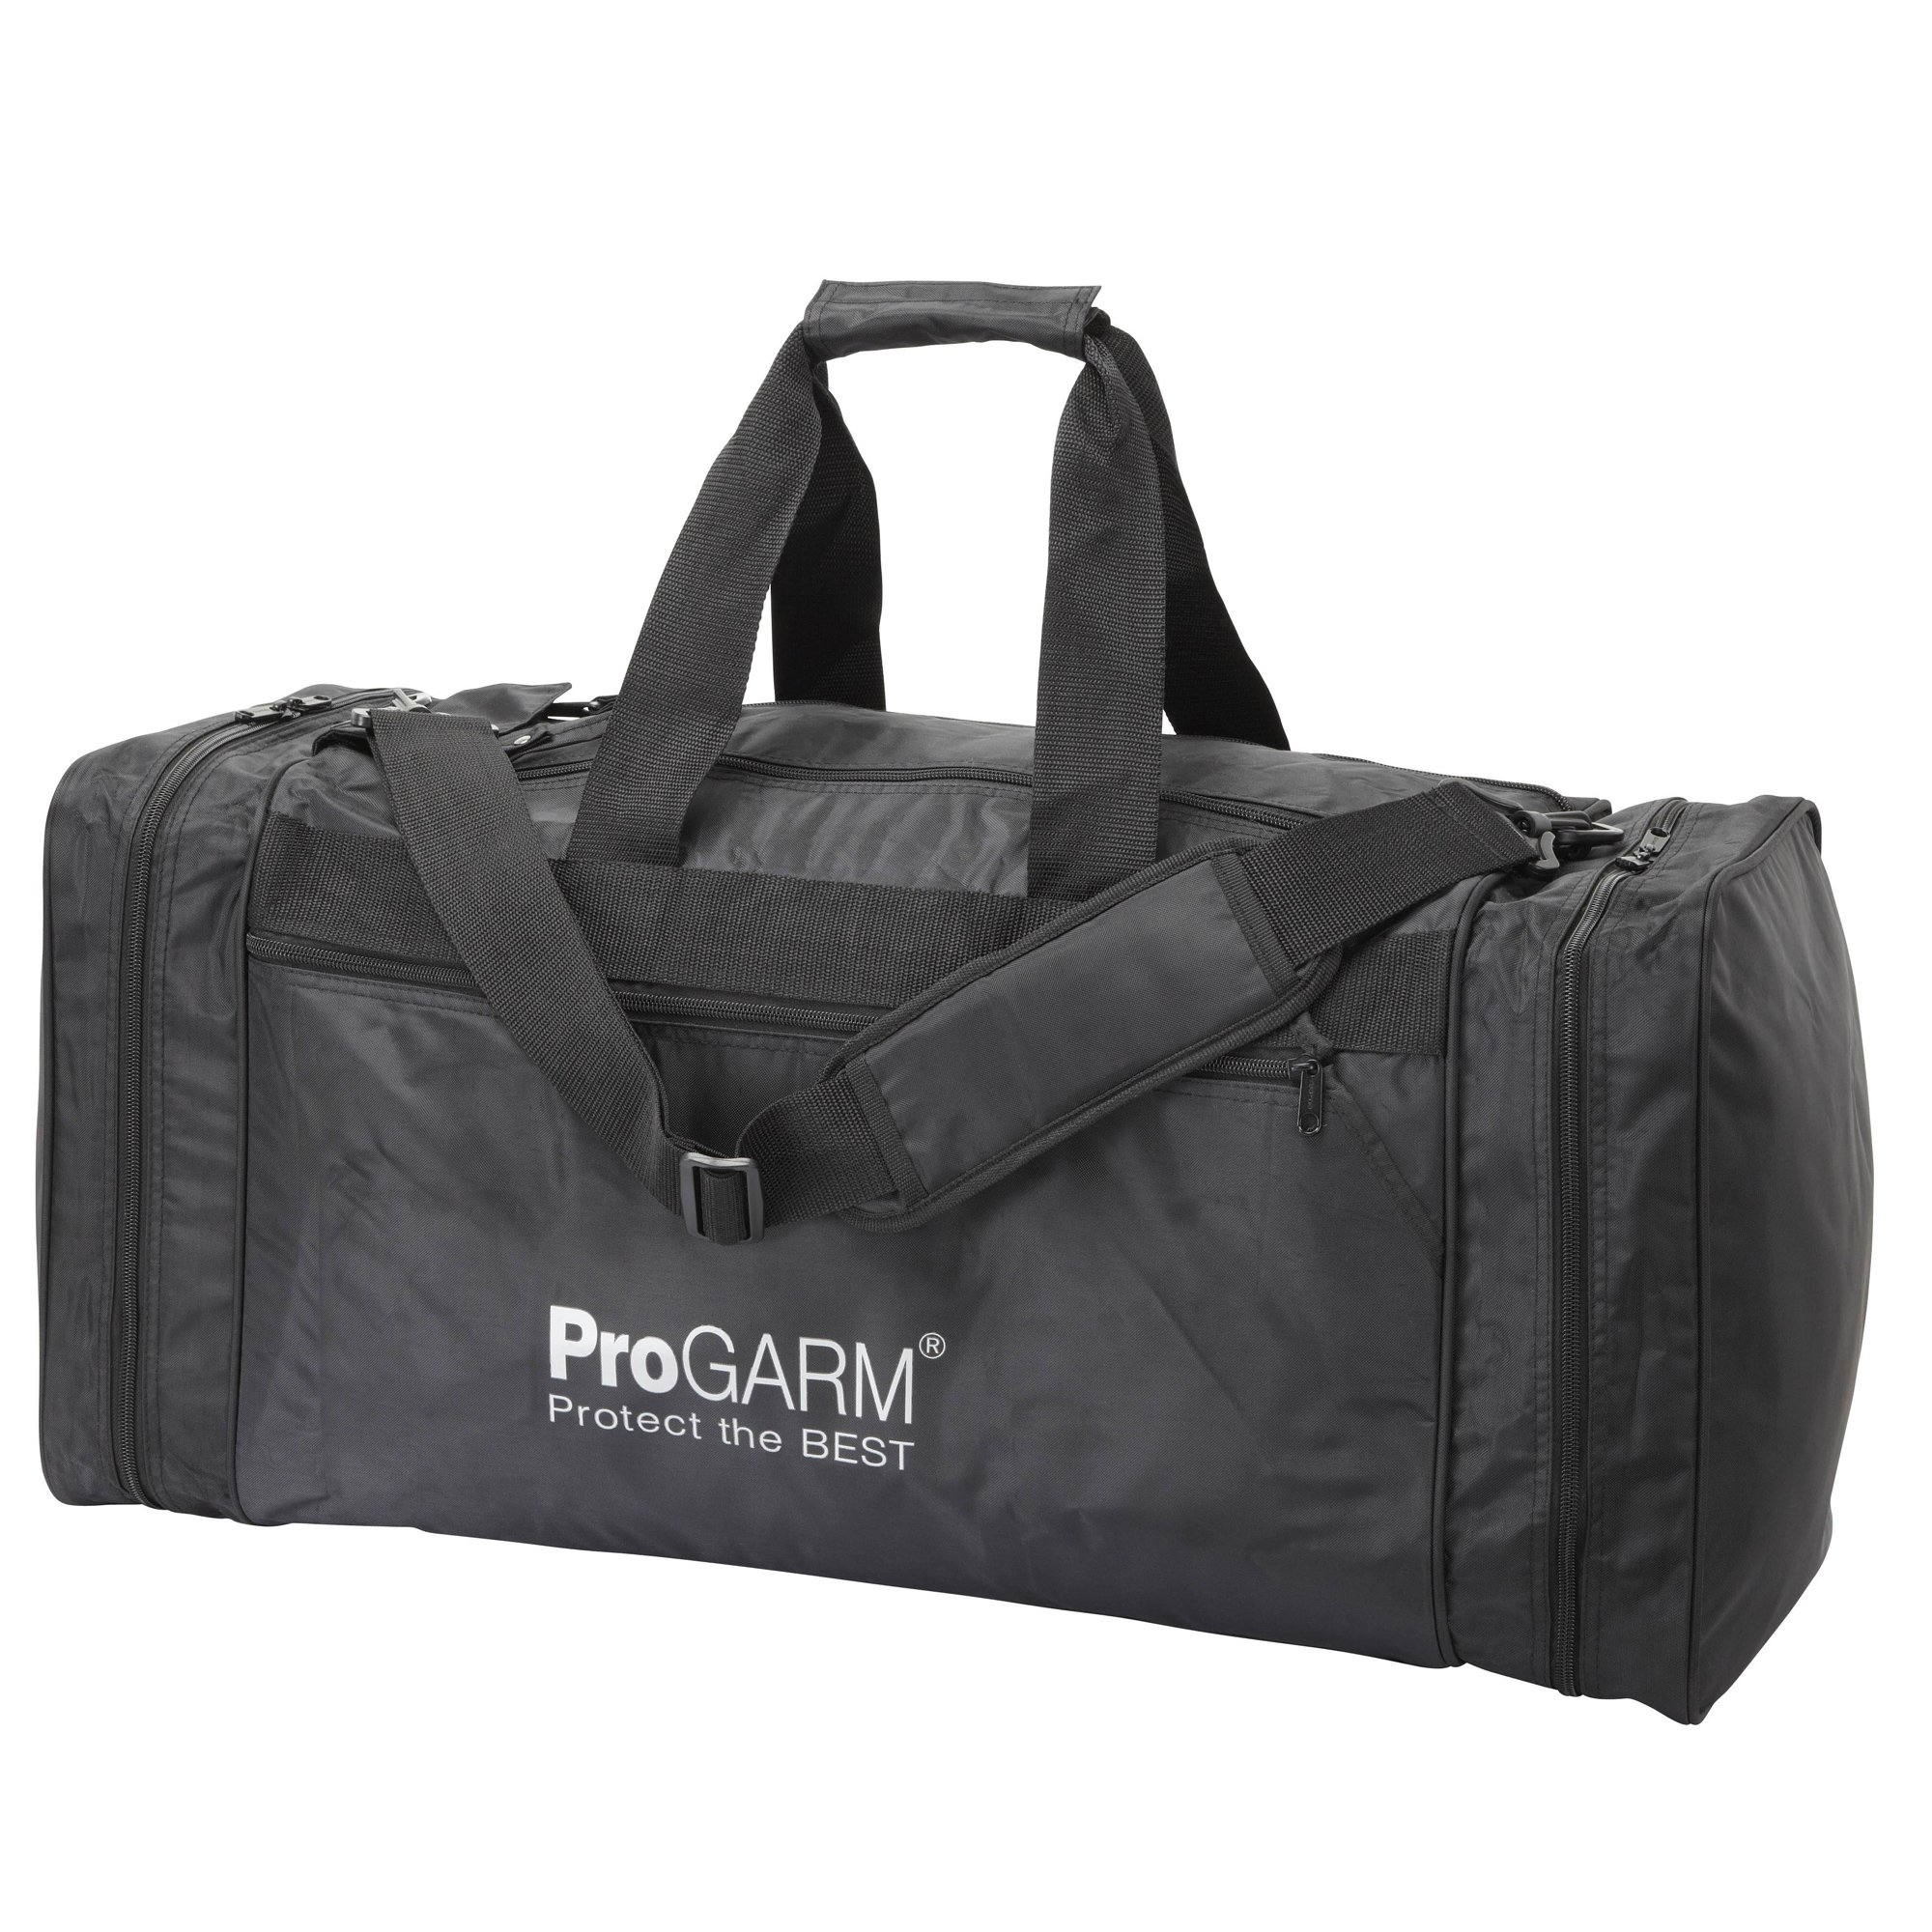 ProGARM 2000 Kit Bag, Anti-Static